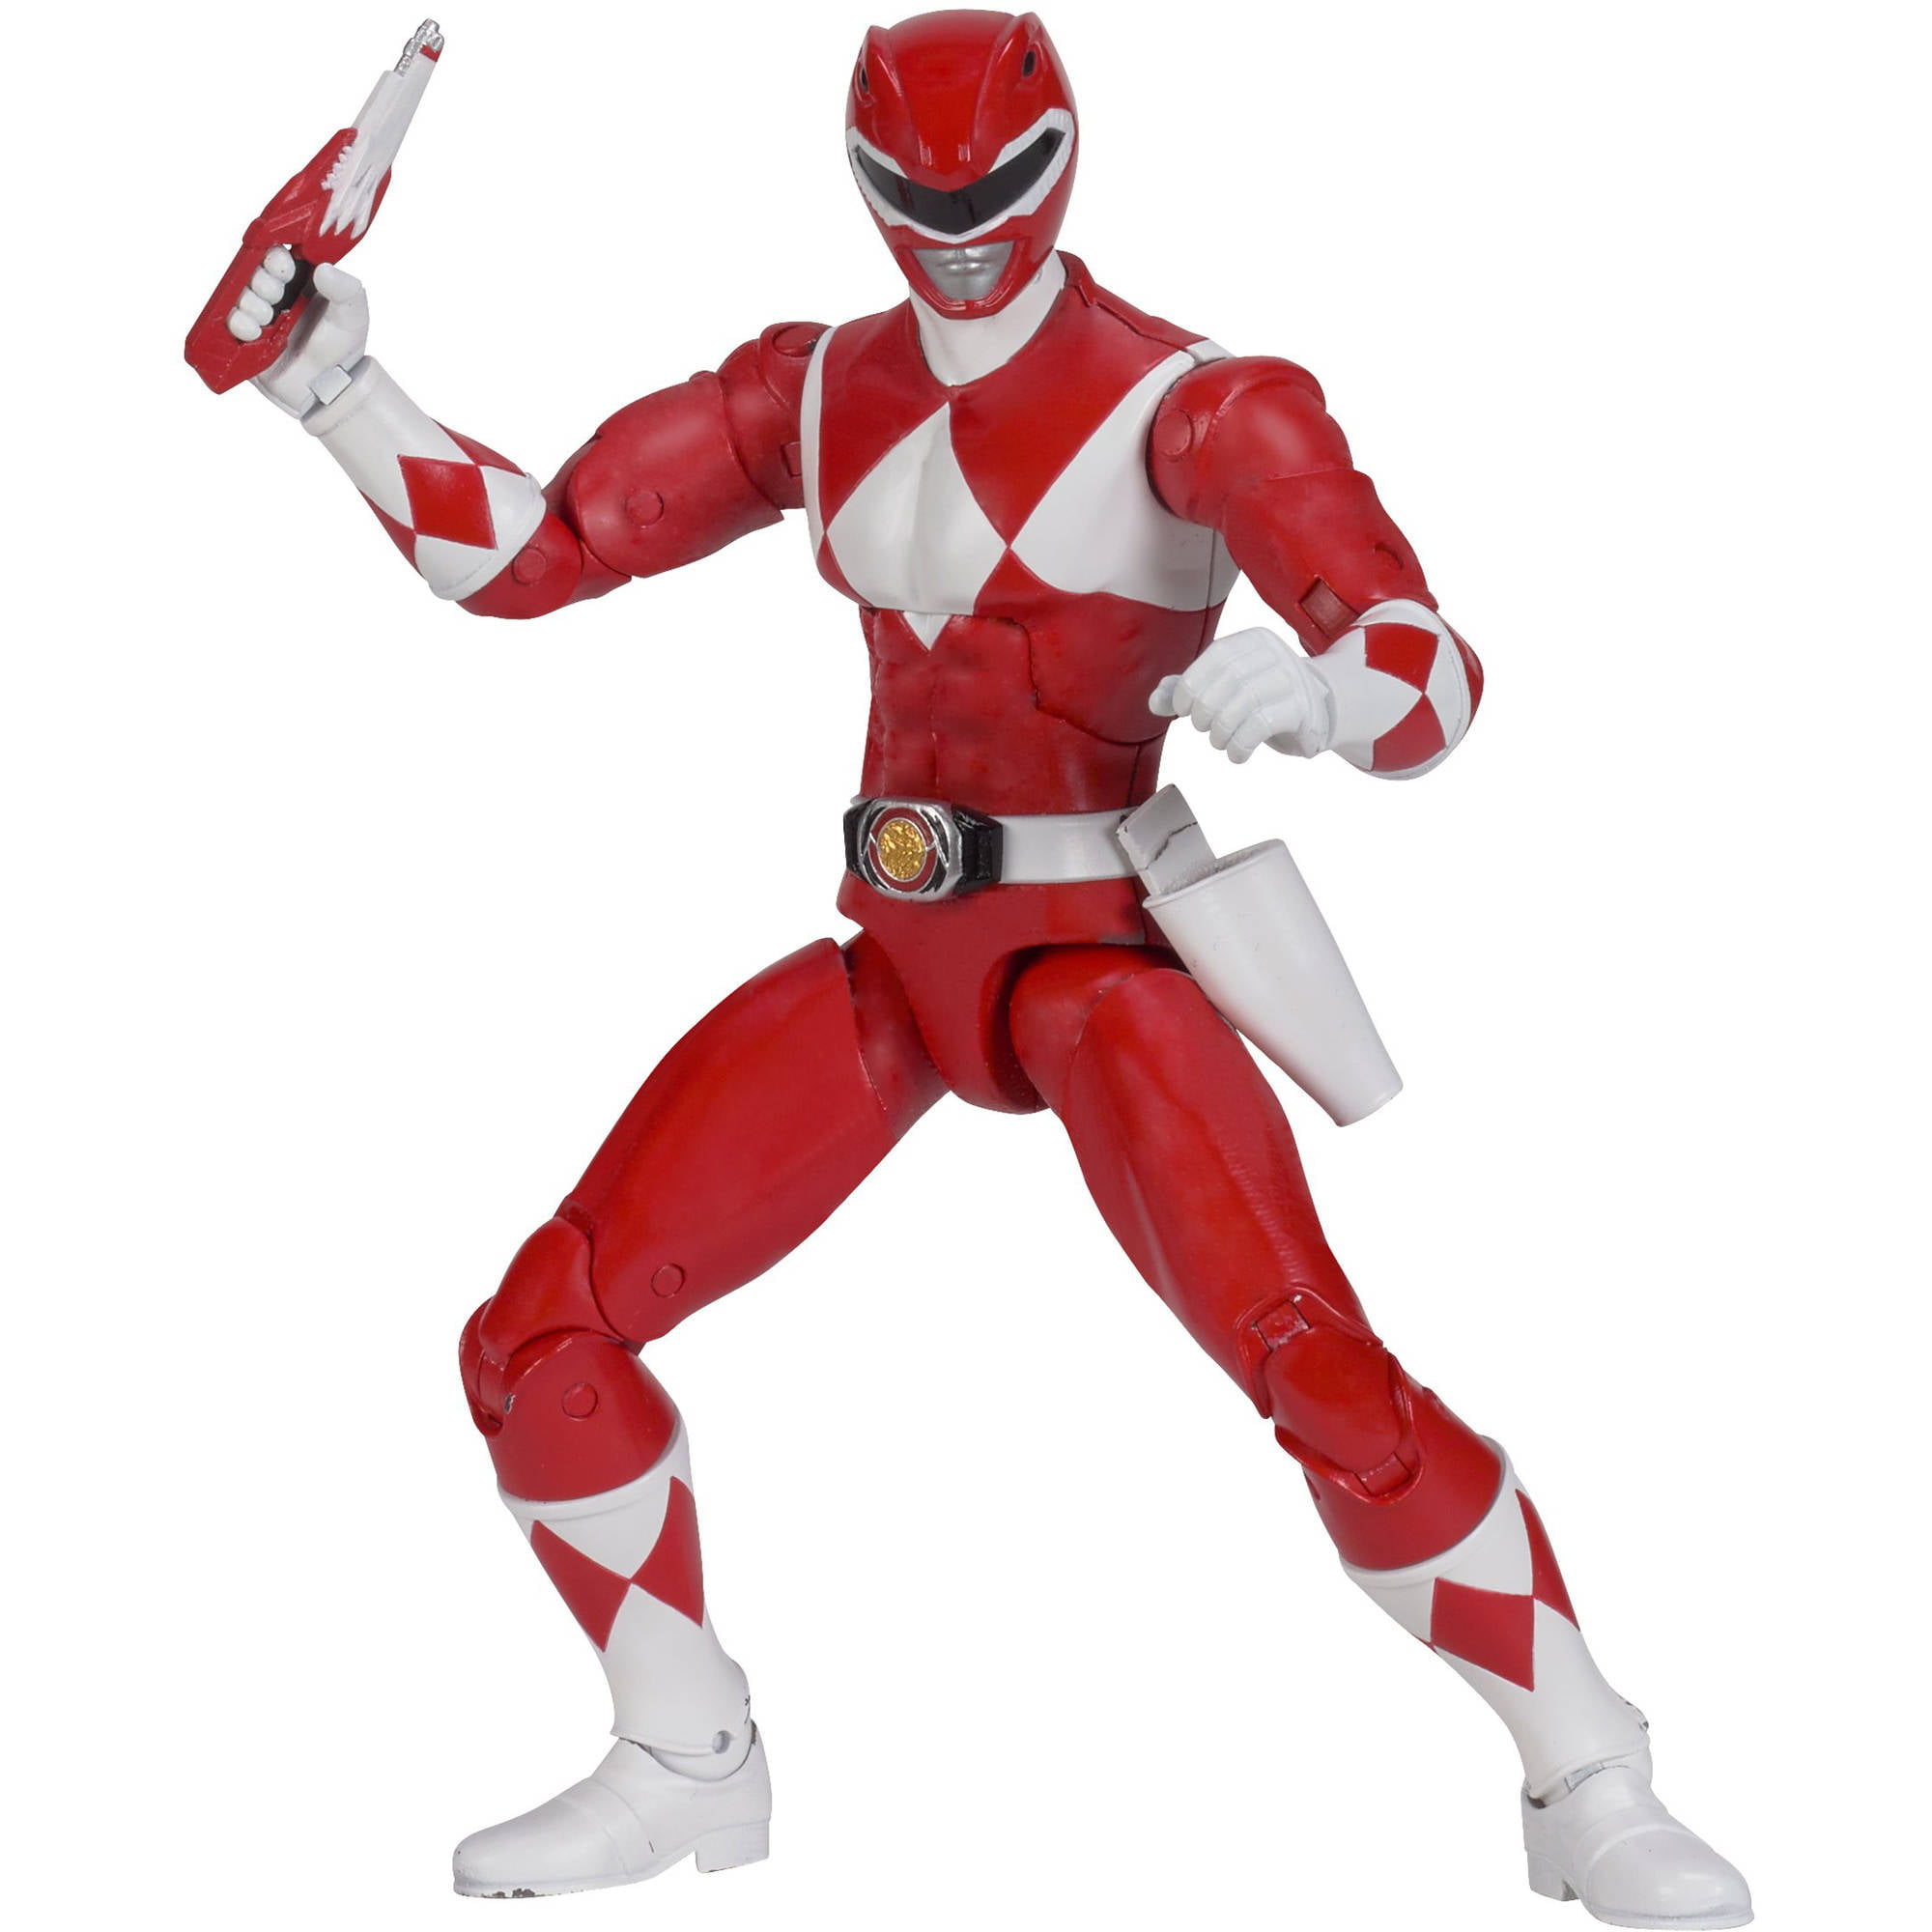 Power Rangers Legacy Mighty Morphin Red Ranger by Bandai America, Inc